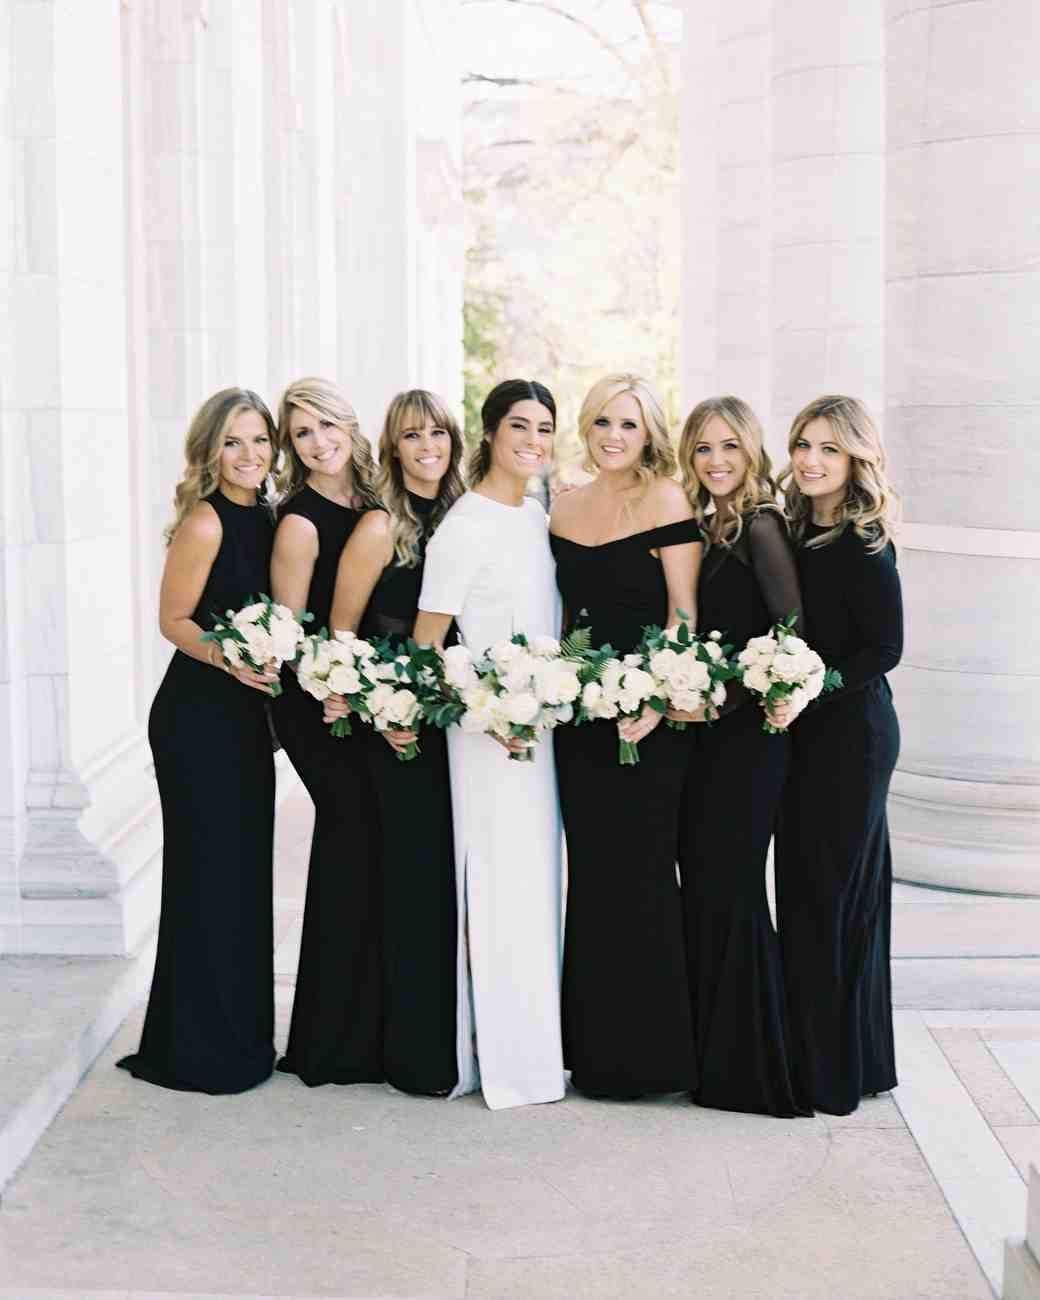 Special Ways To Help Your Maid Of Honor Stand Out Black Bridesmaid Dresses Black Bridesmaids Wedding Bridesmaid Dresses [ 1300 x 1040 Pixel ]